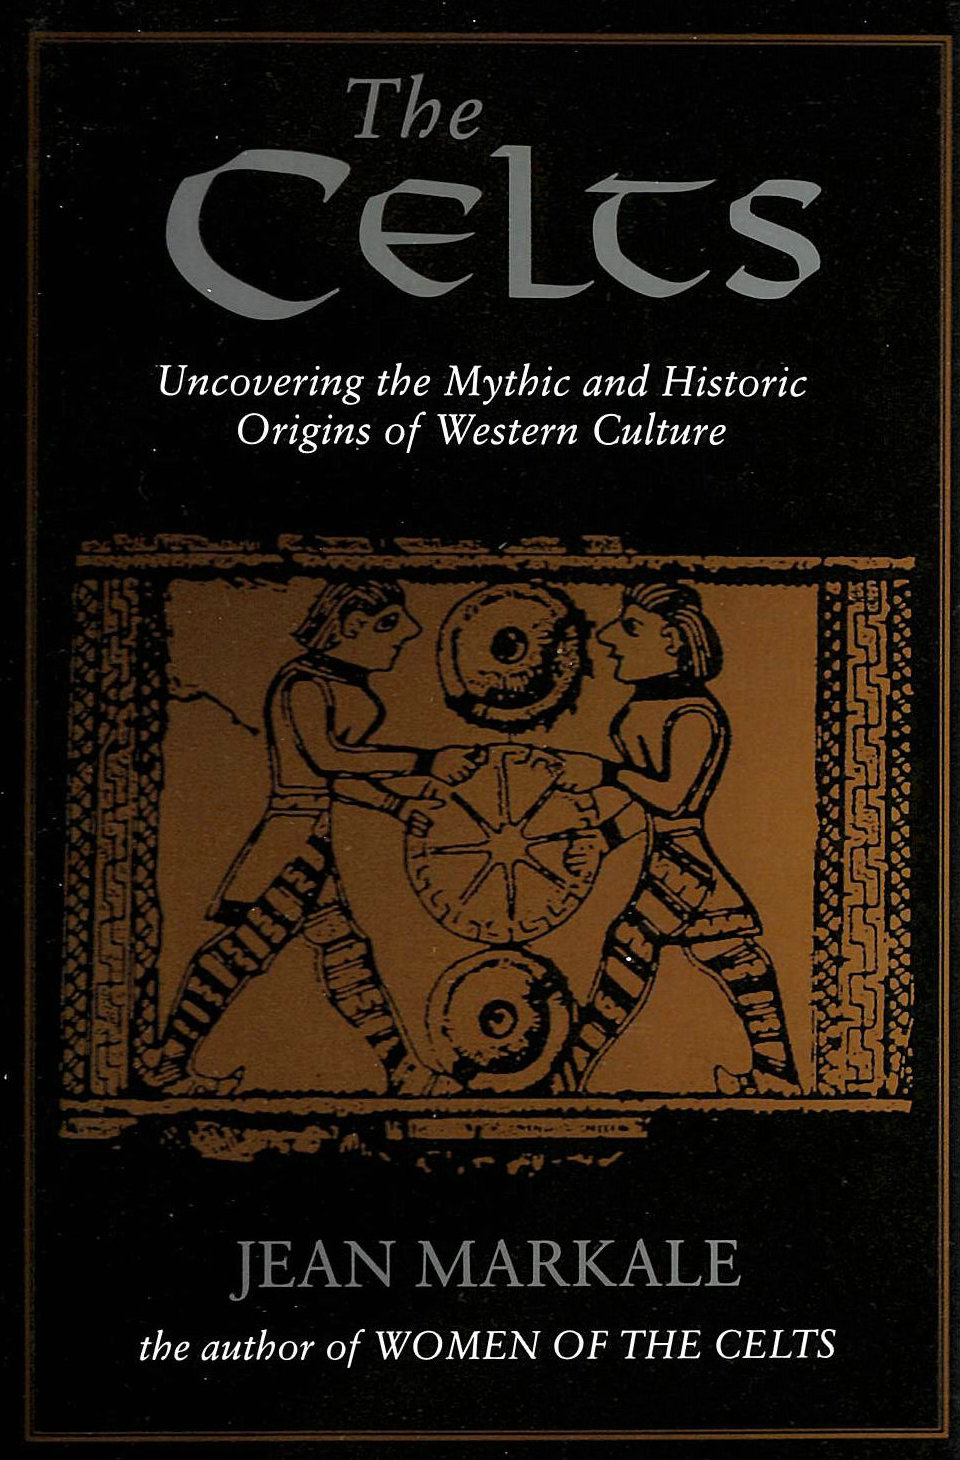 Image for The Celts: Uncovering the Mythic and Historic Origins of Western Culture